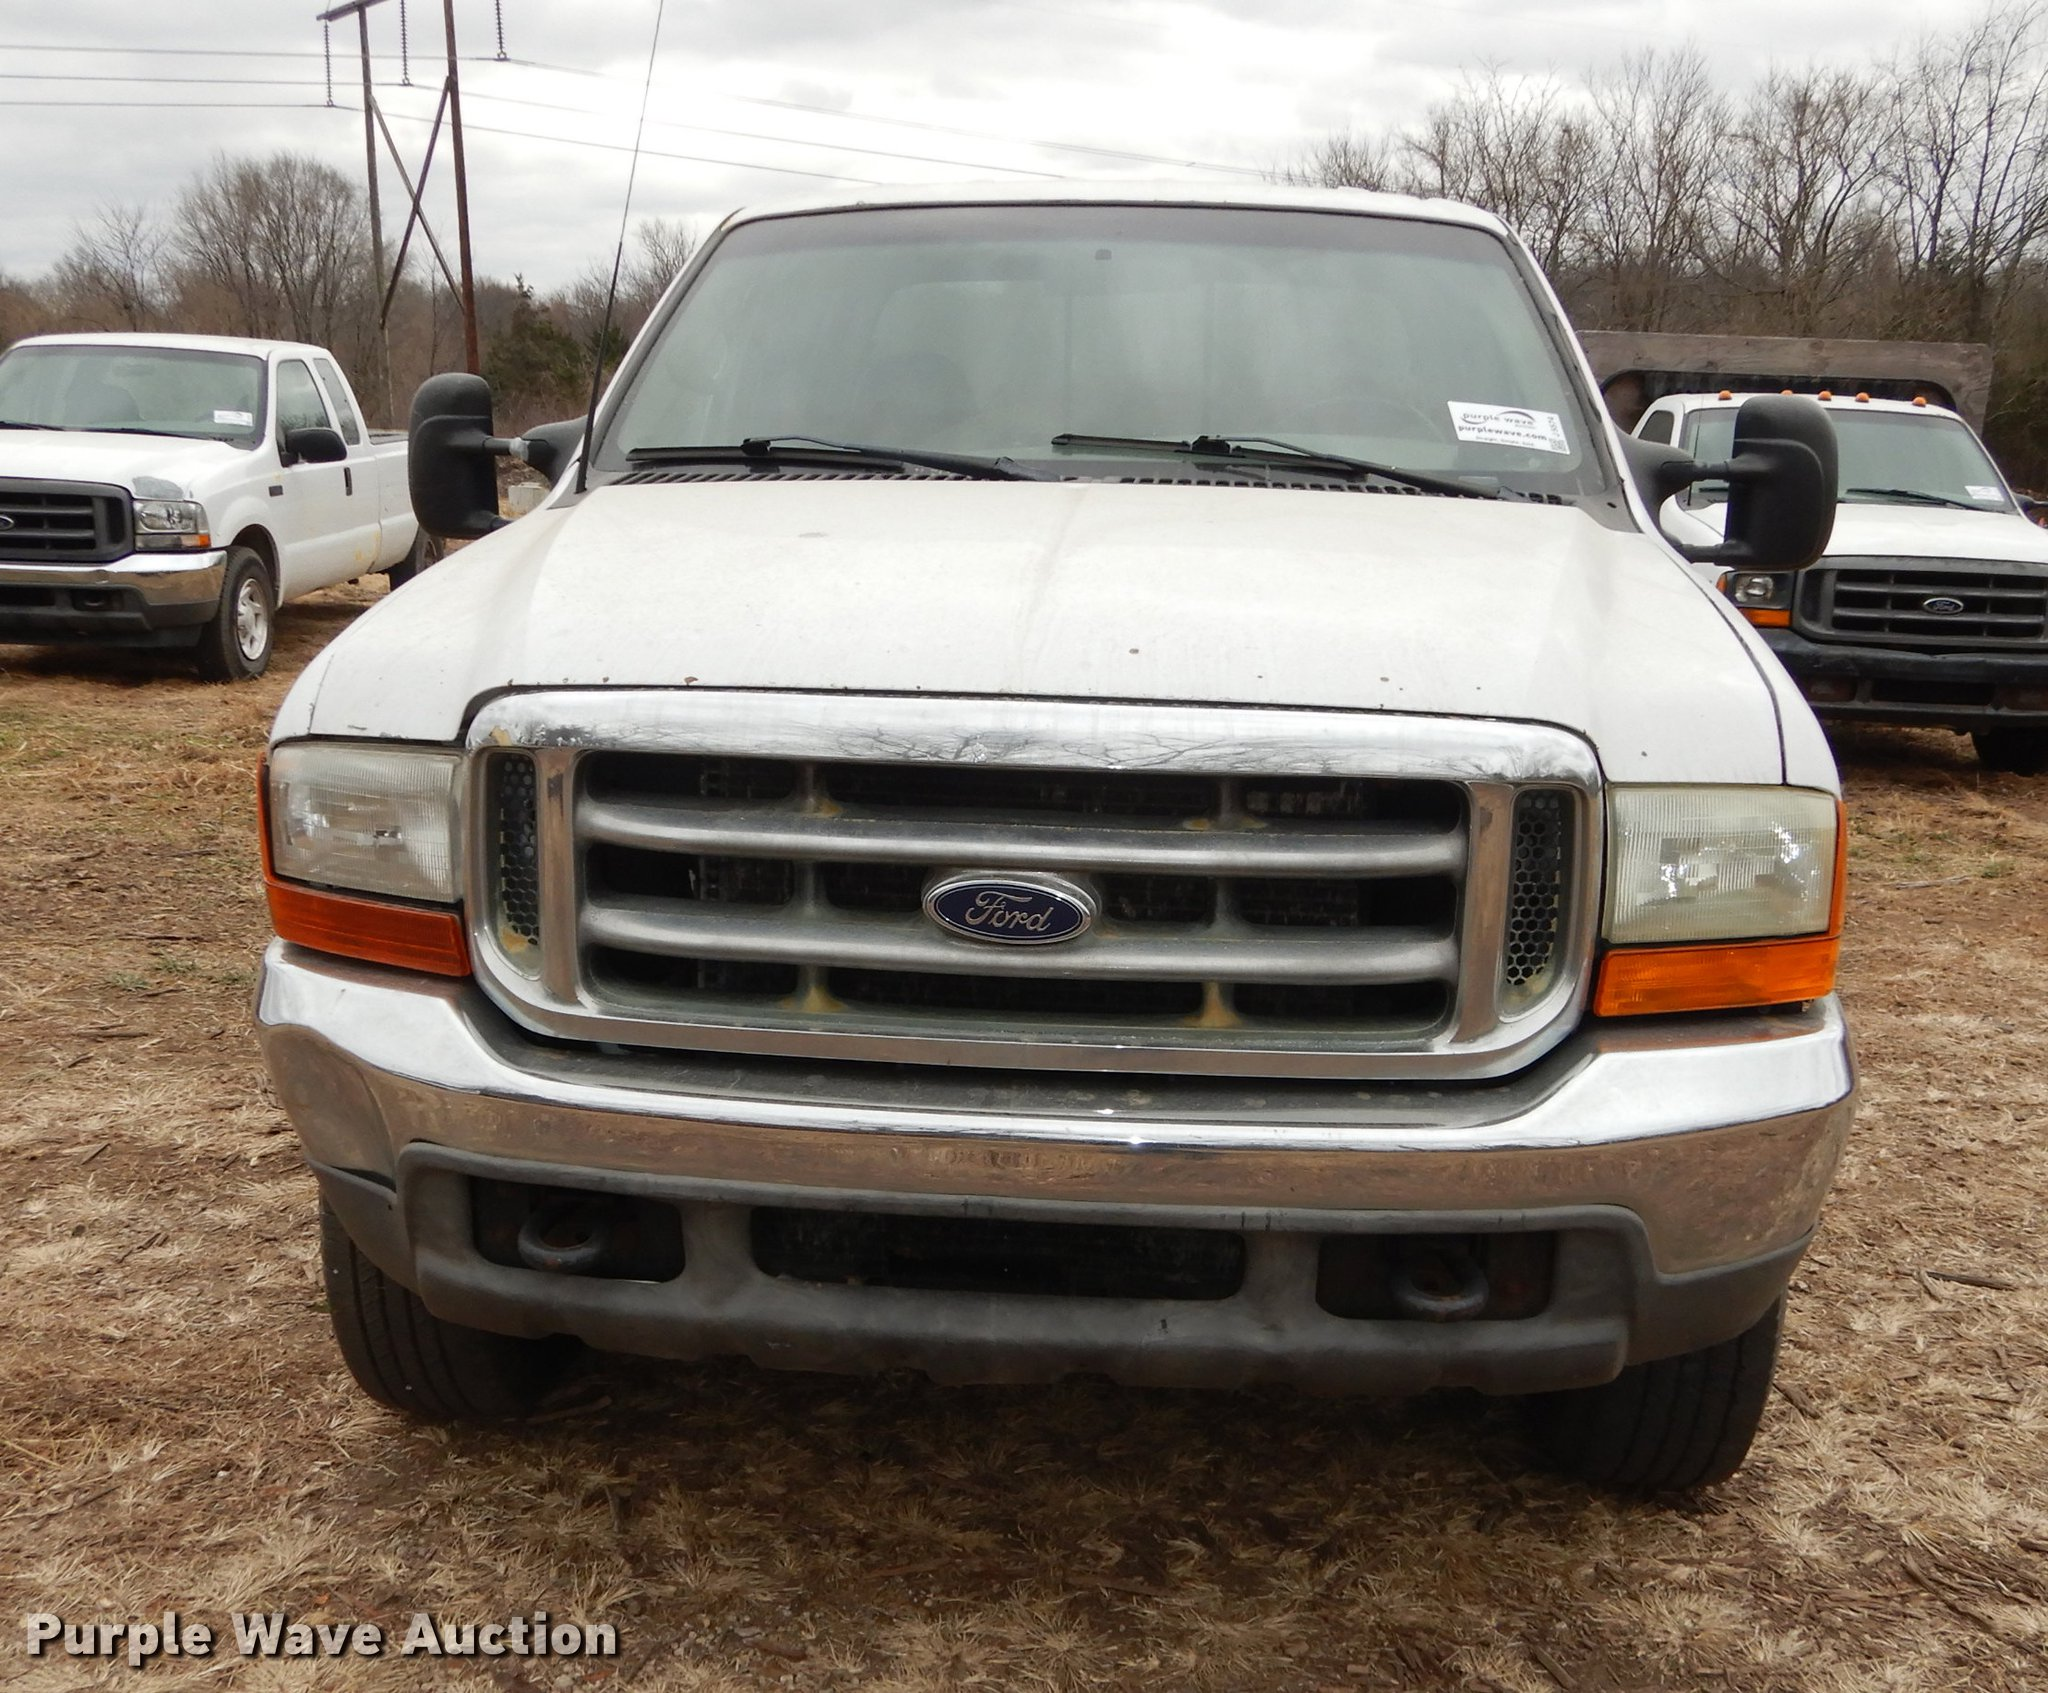 2000 Ford F250 Super Duty Xlt Crew Cab Pickup Truck Item J Full Size In New Window